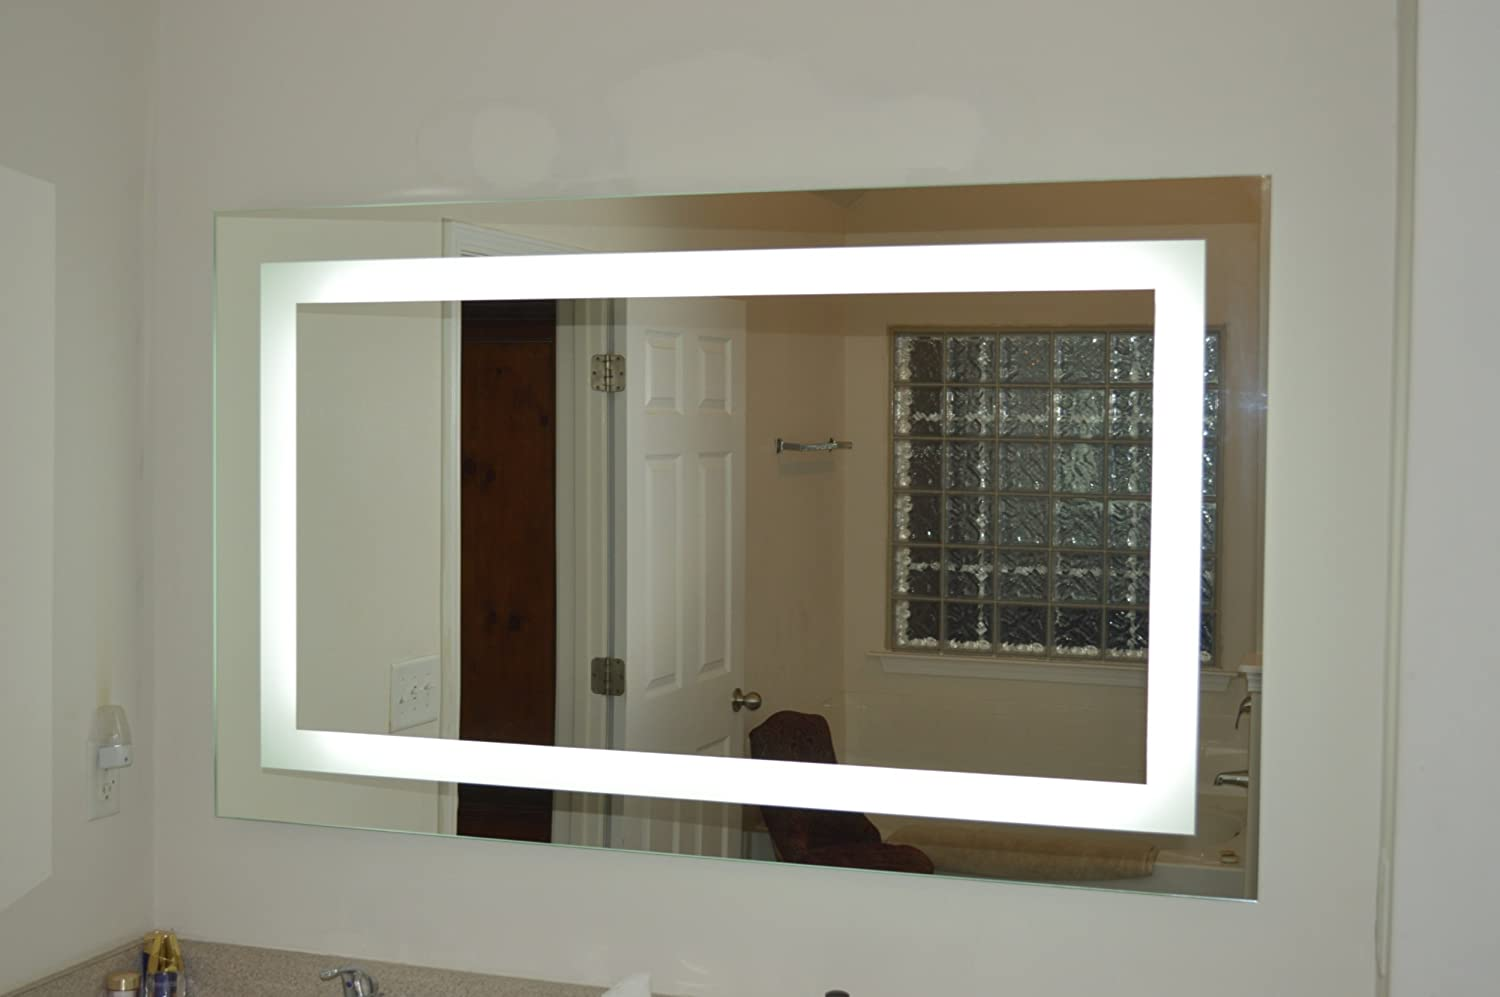 Amazon.com: Lighted Vanity Mirror LED MAM86036 Commercial Grade 60 ...